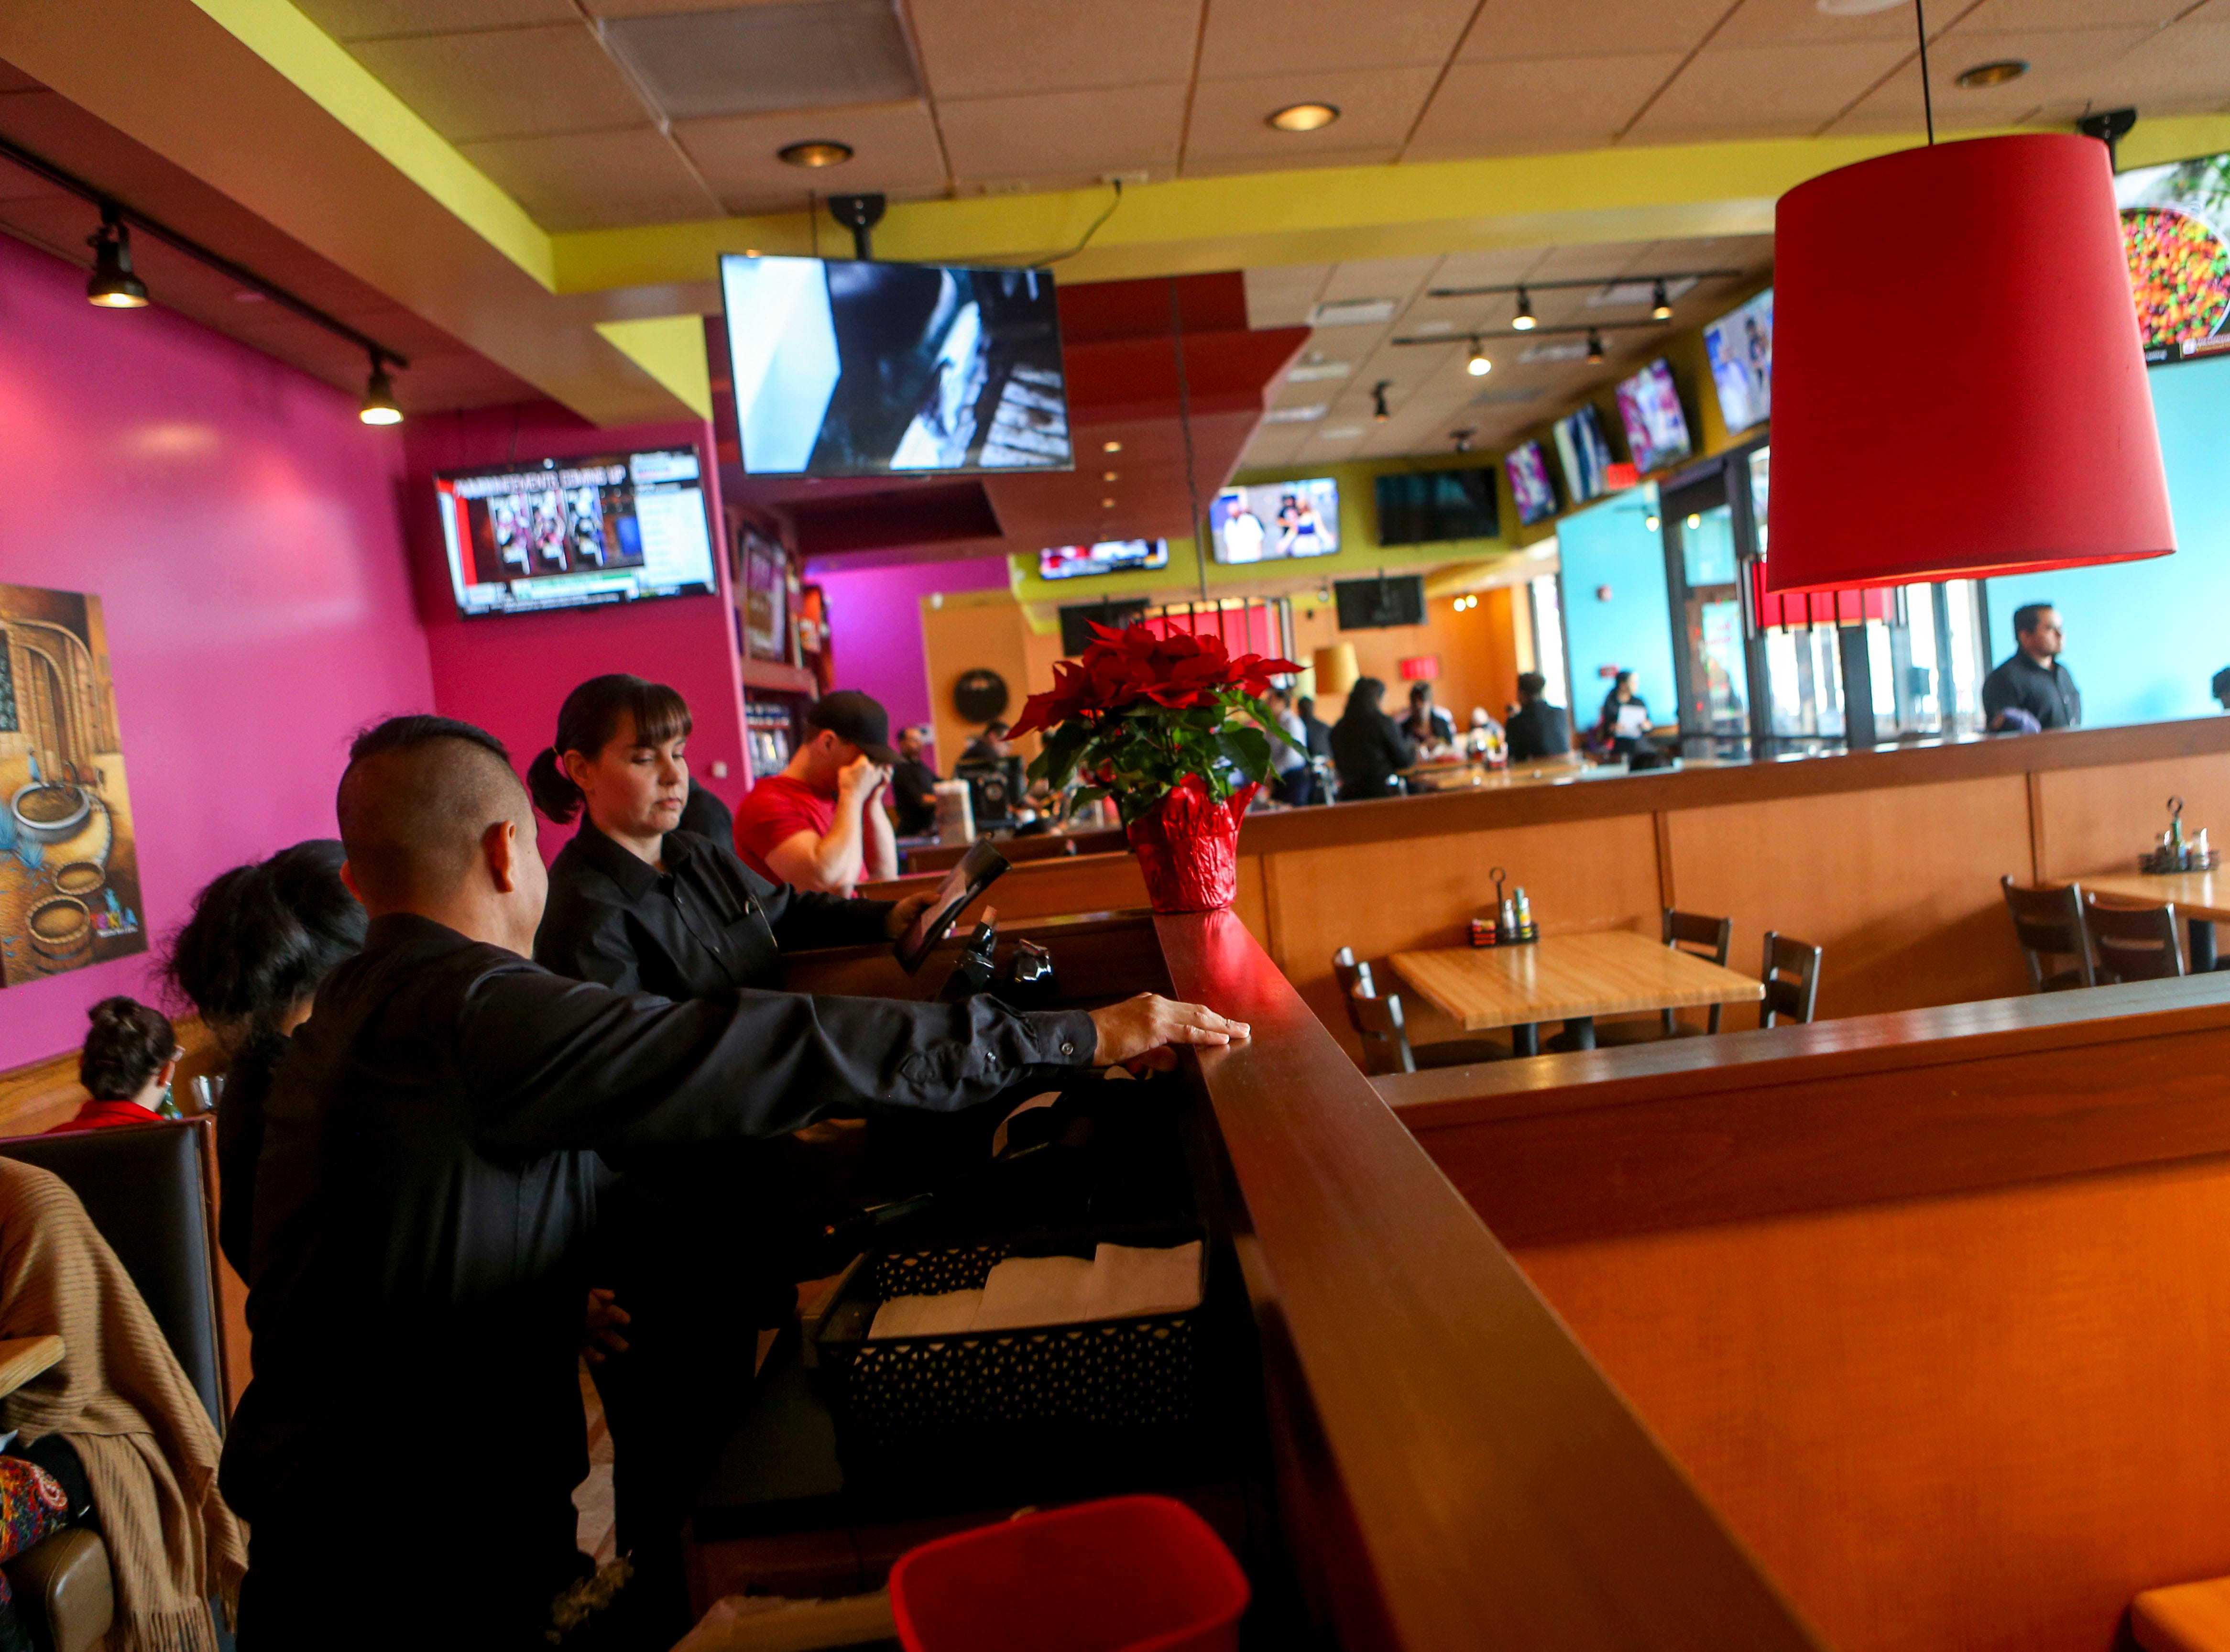 Wait staff look through options on the restaurants computers during the opening day at Te'Kila Mexican Bar & Grill in Jackson, Tenn., on Wednesday, Dec. 19, 2018.